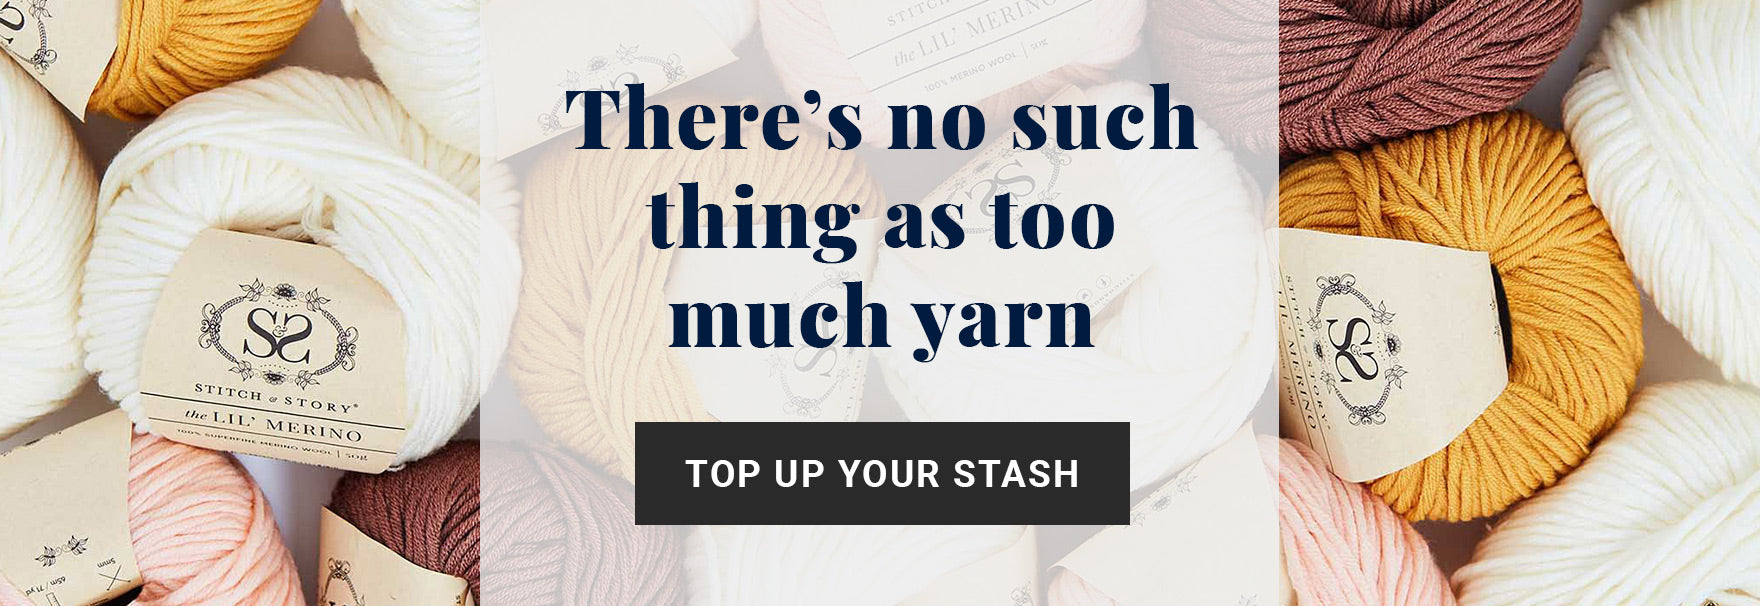 Shop for knitting and crochet yarns at Stitch & Story